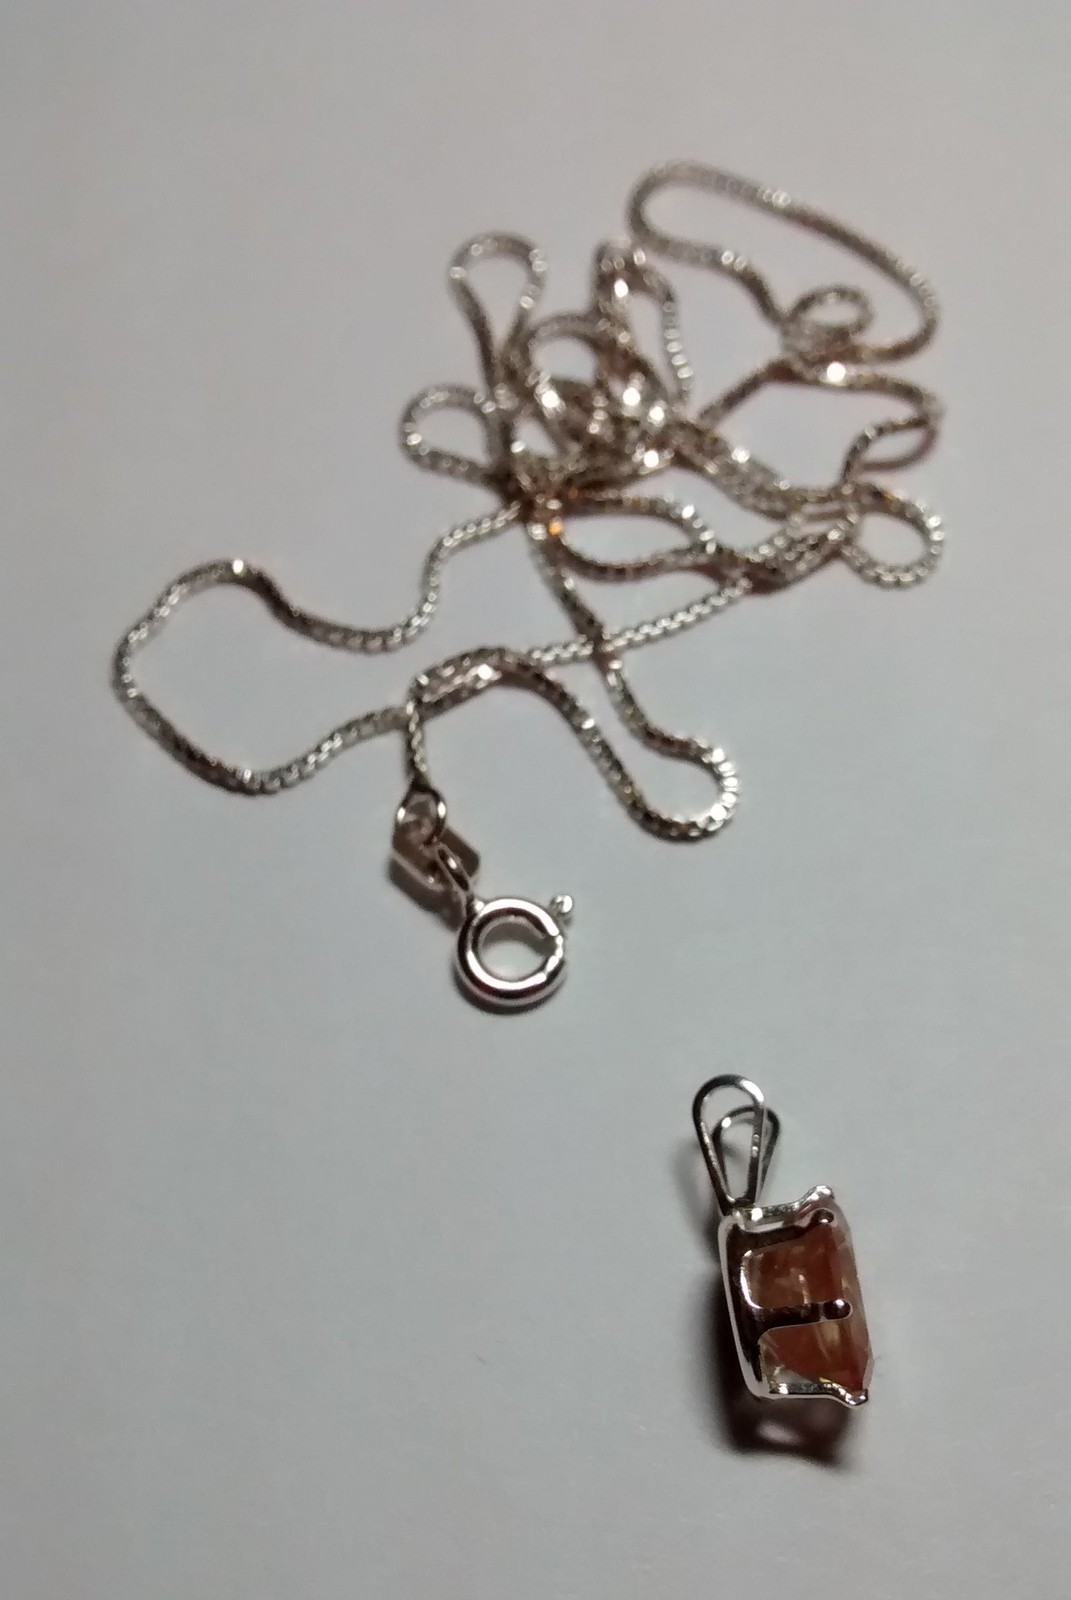 beautiful sunstone pendant and chain in .925 sterling silver